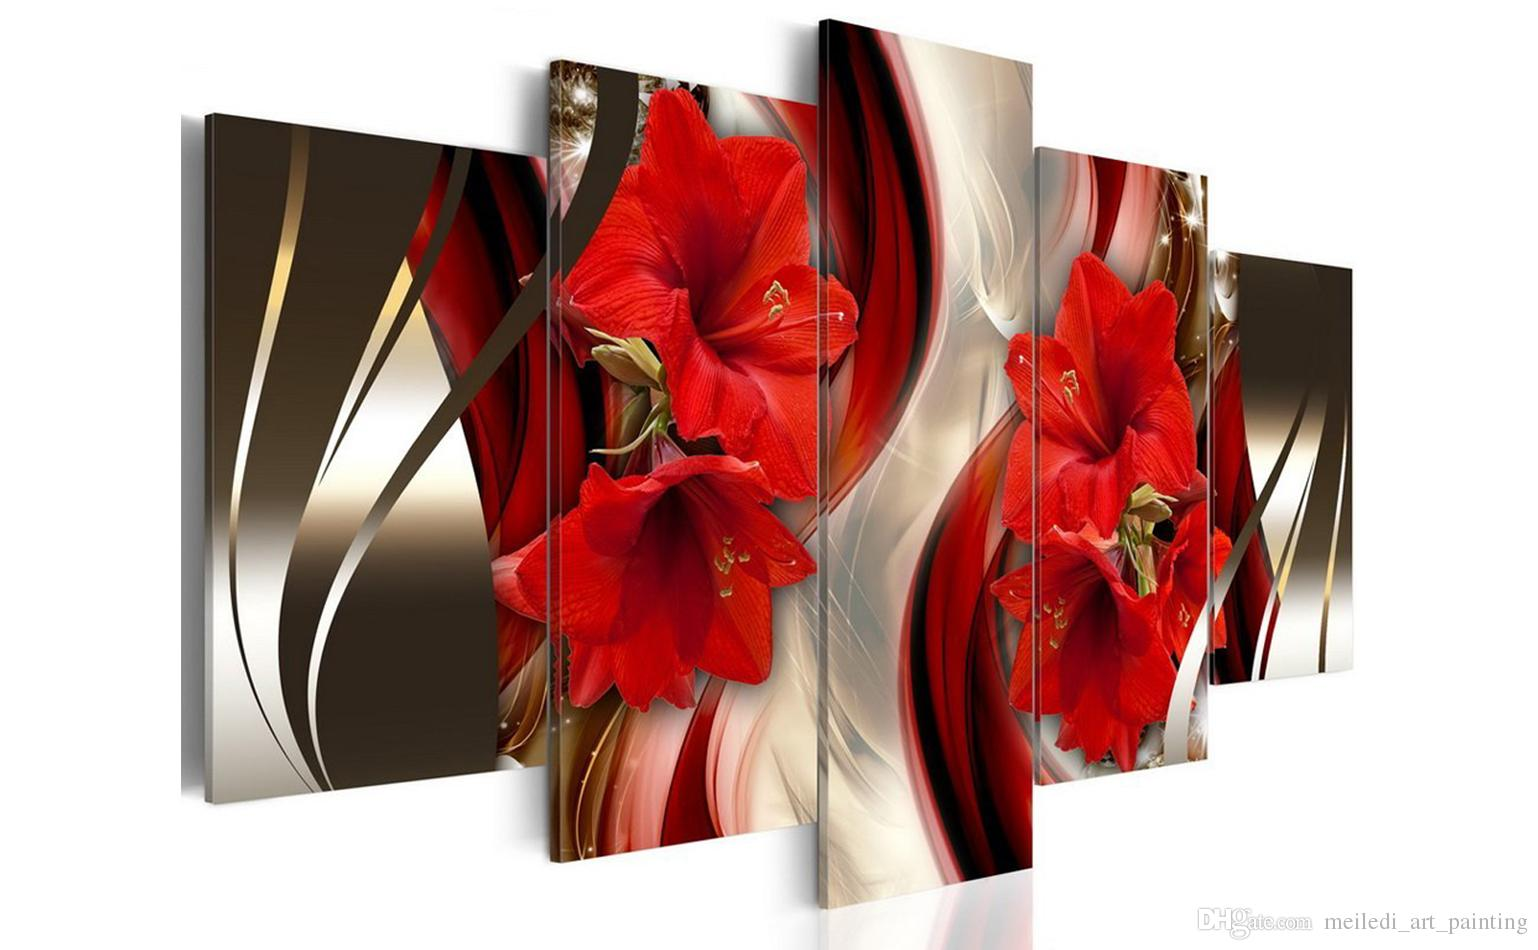 5 pieces canvas painting red lily flowers wall art painting stripe background wall art for home decor with wooden framed ready to hang gifts